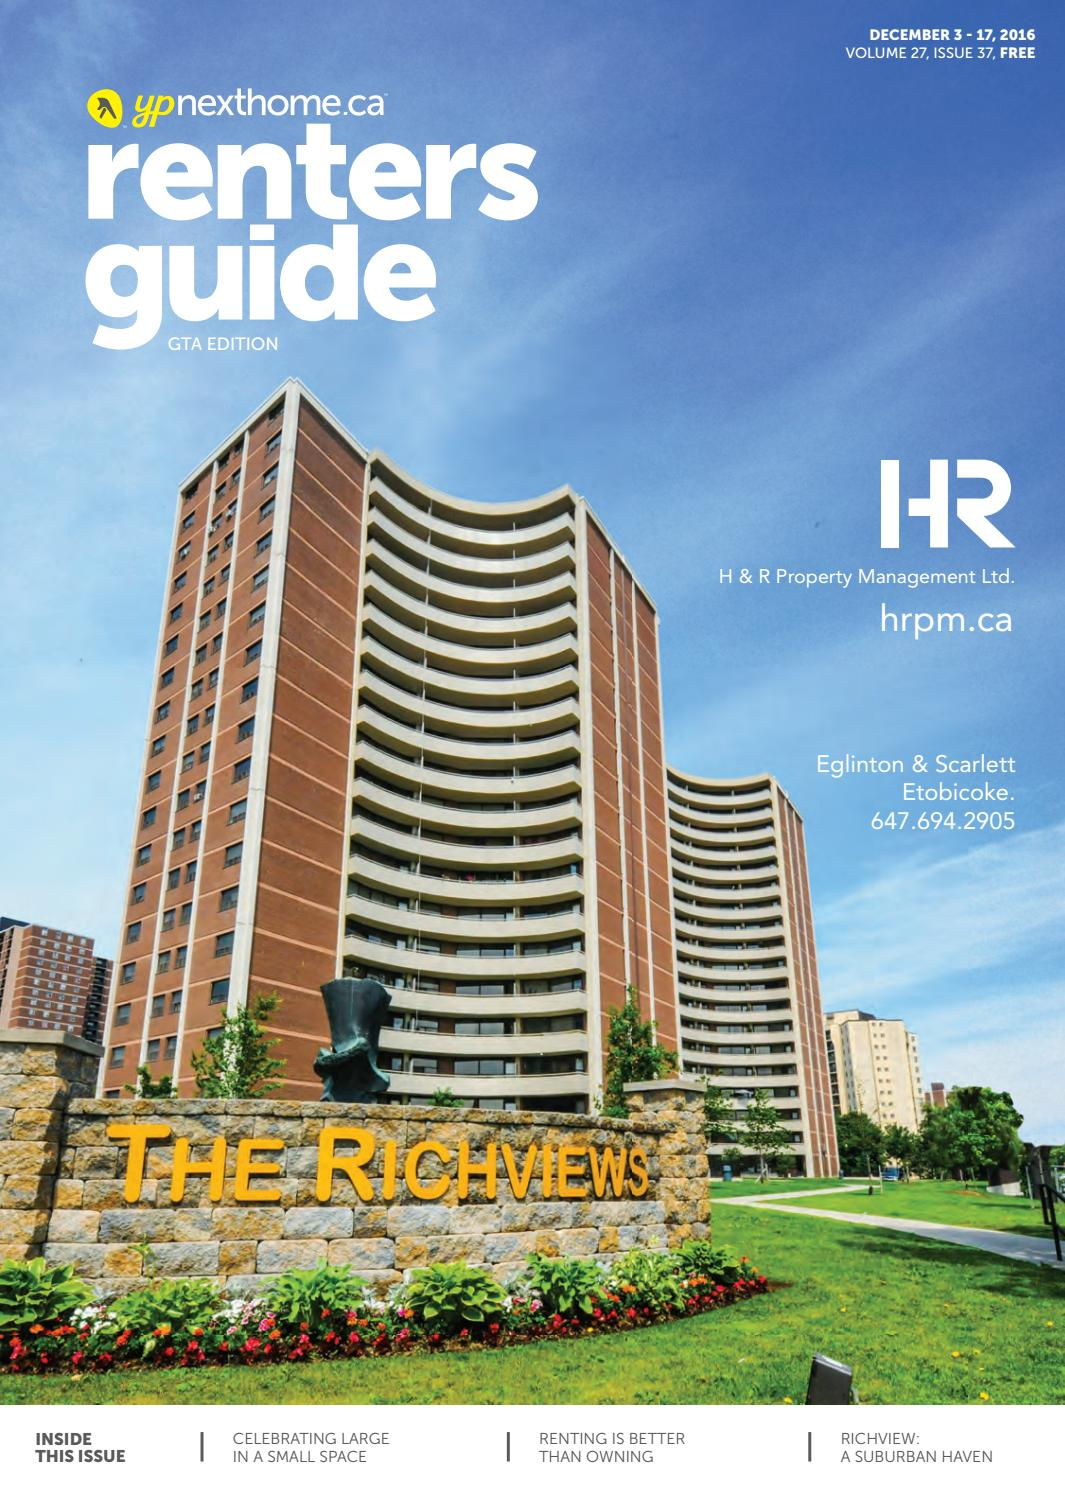 Apartments For Rent Royal York And Eglinton